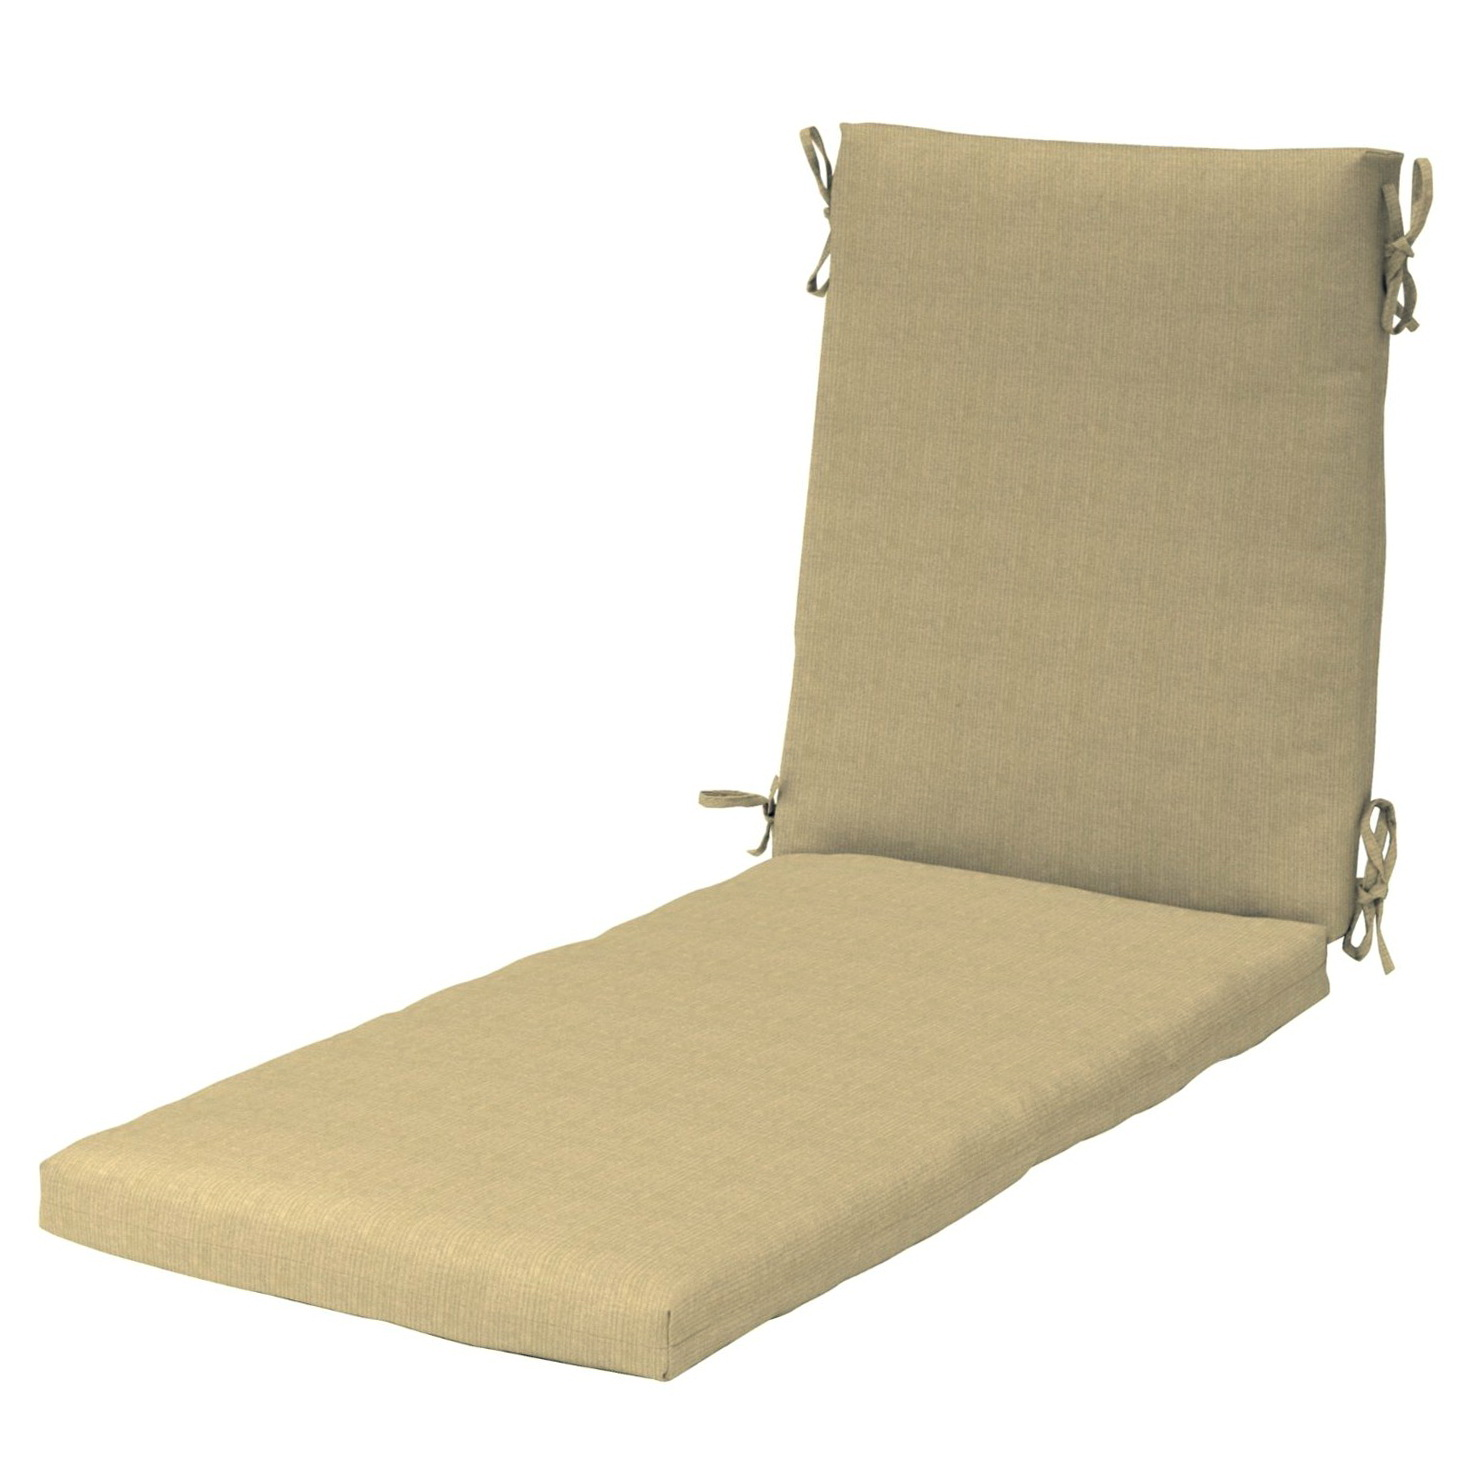 outdoor chair cushions sale armrest covers patio on home design ideas